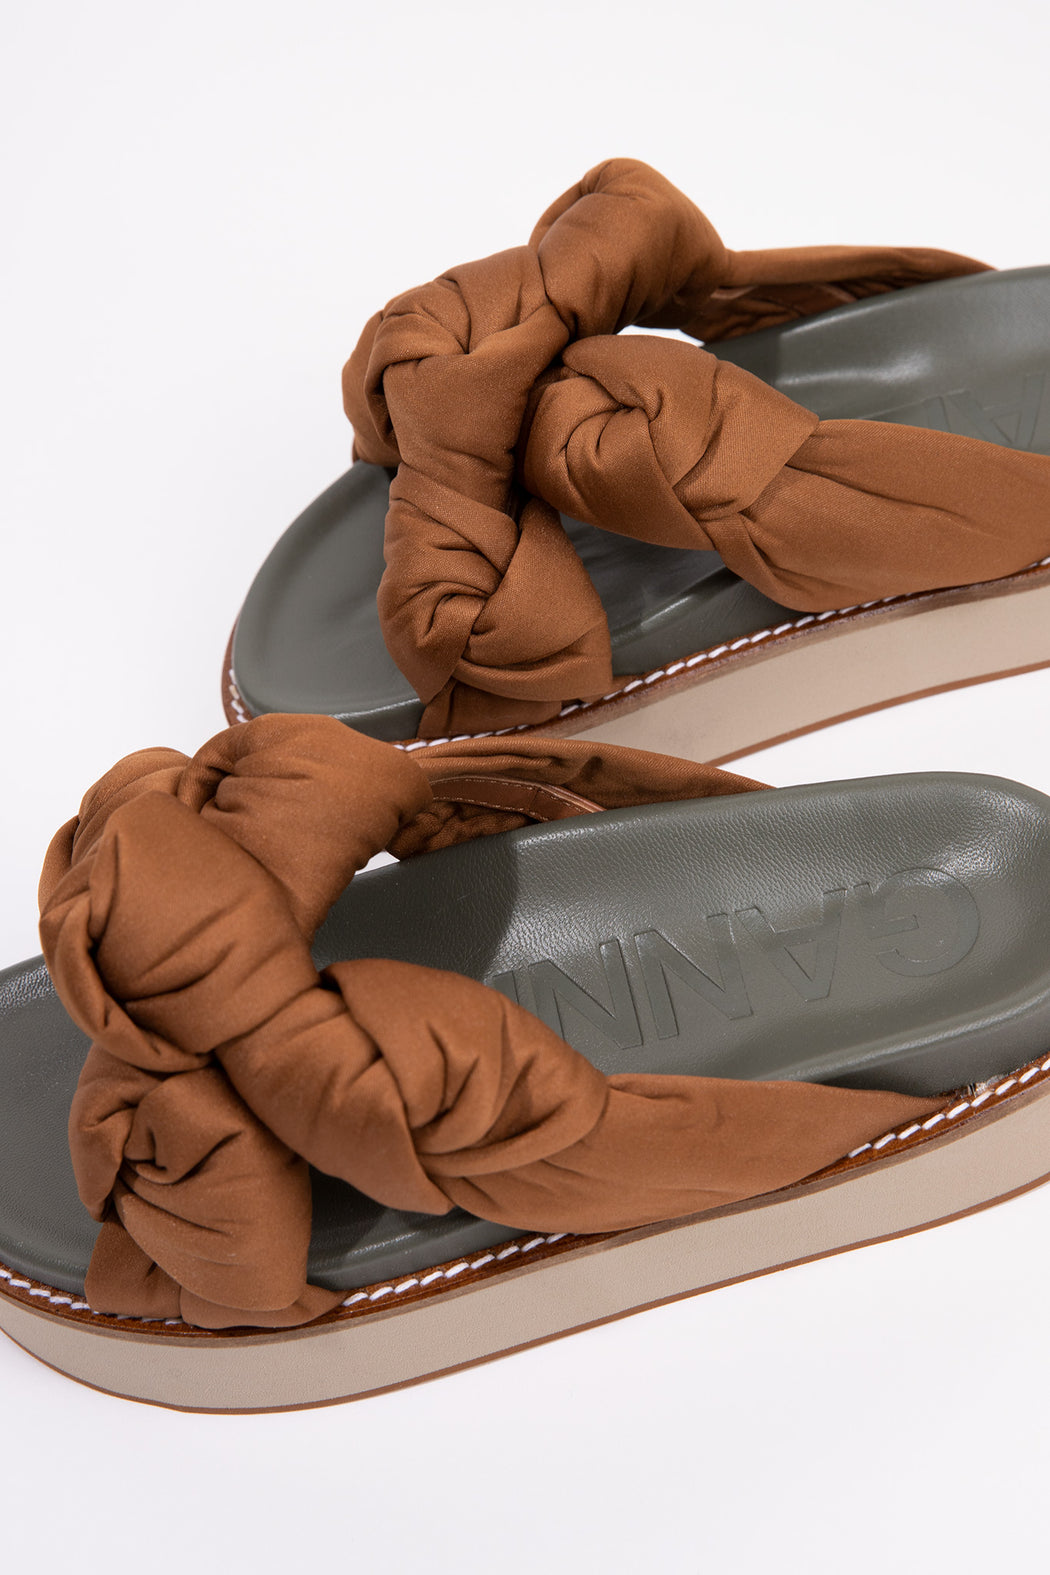 Ganni-Recycled-Satin-Mid-Knotted-Sandal-Chipmunk